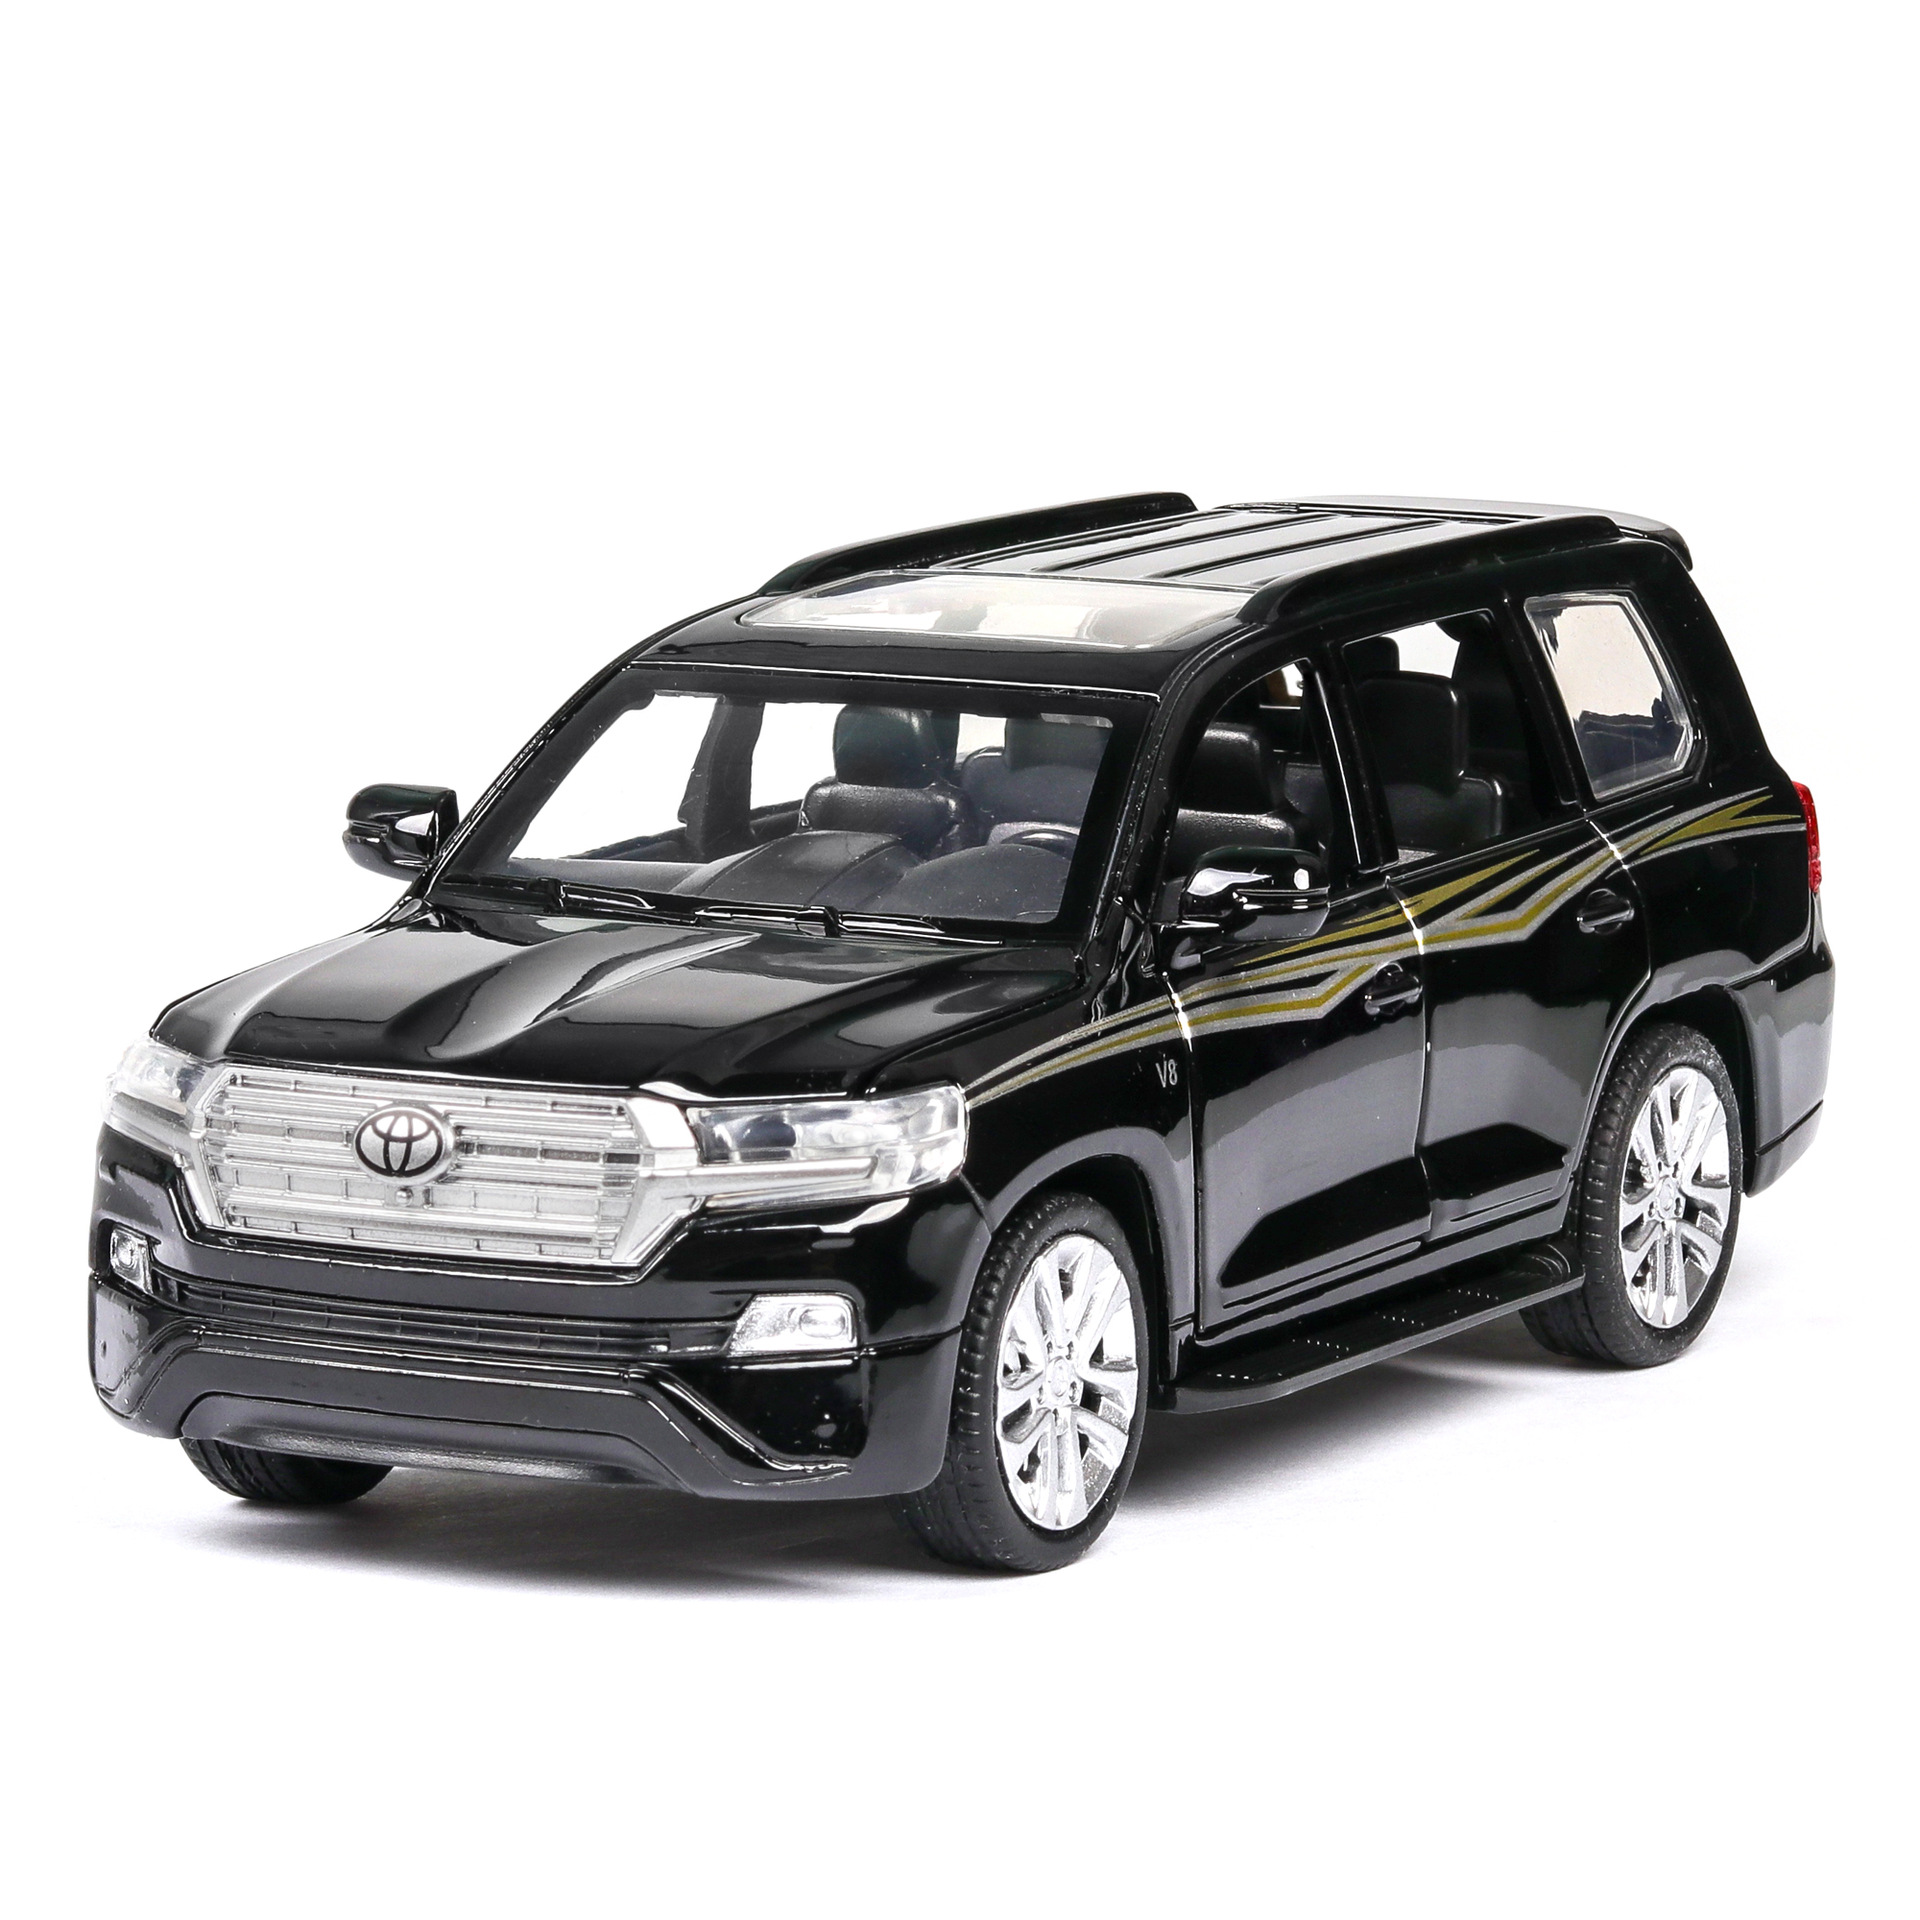 1:32 Car Model Diecast Metal Toyota Land Cruiser Off-Road Vehicle Alloy Toy Car Sound Light Door Pull Back Car Collection Gift